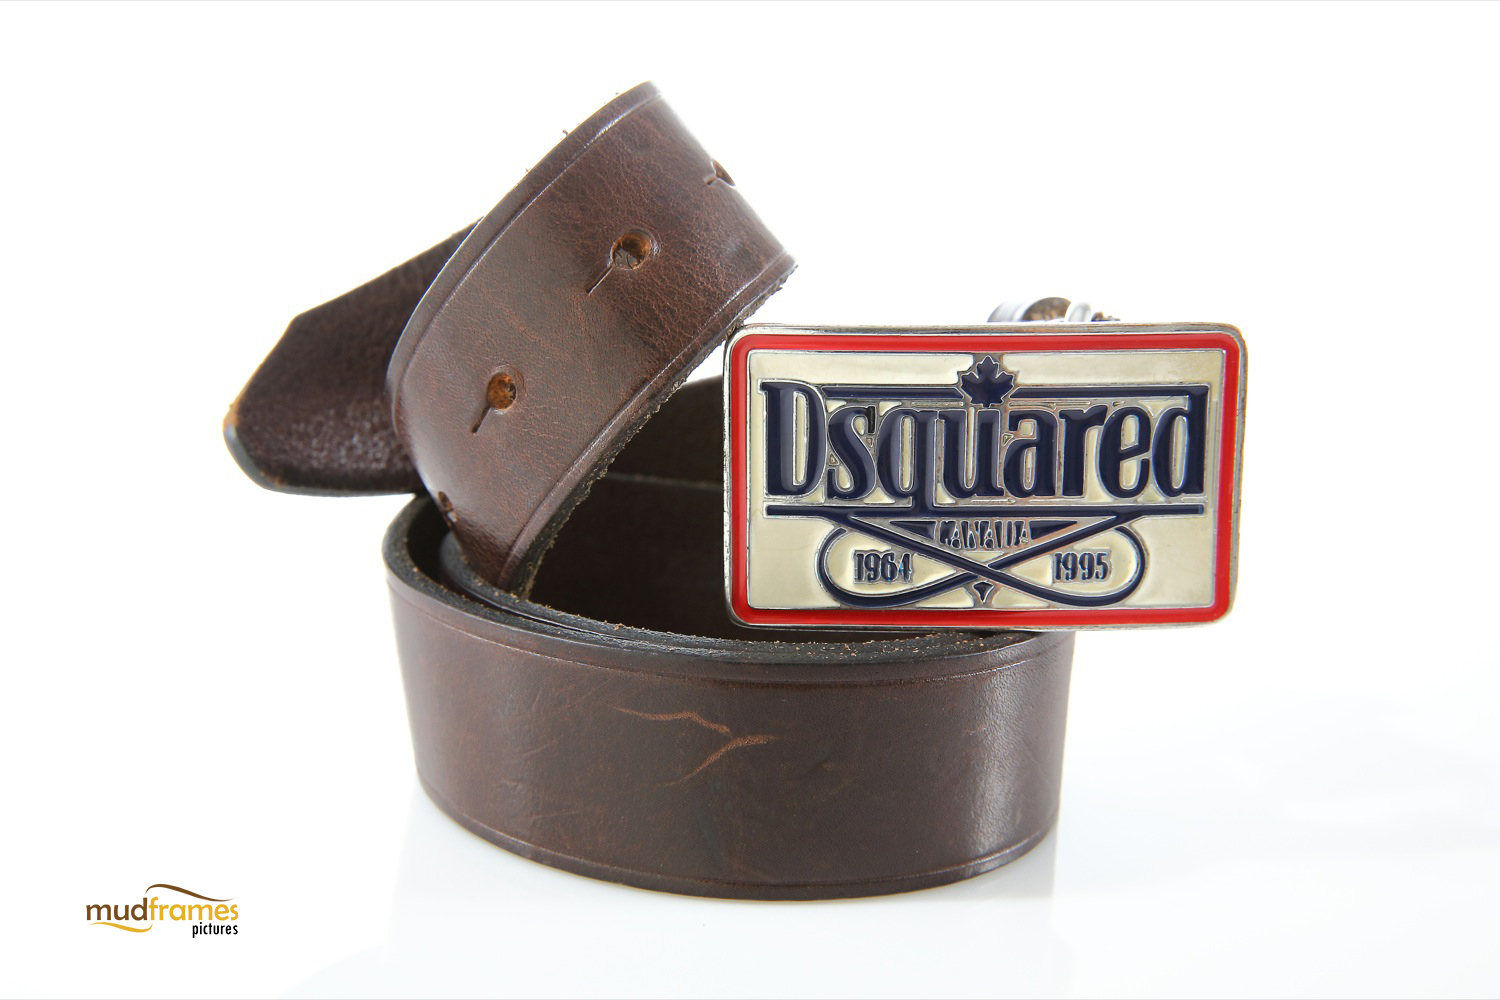 Brown Dsquared leather belt on white background